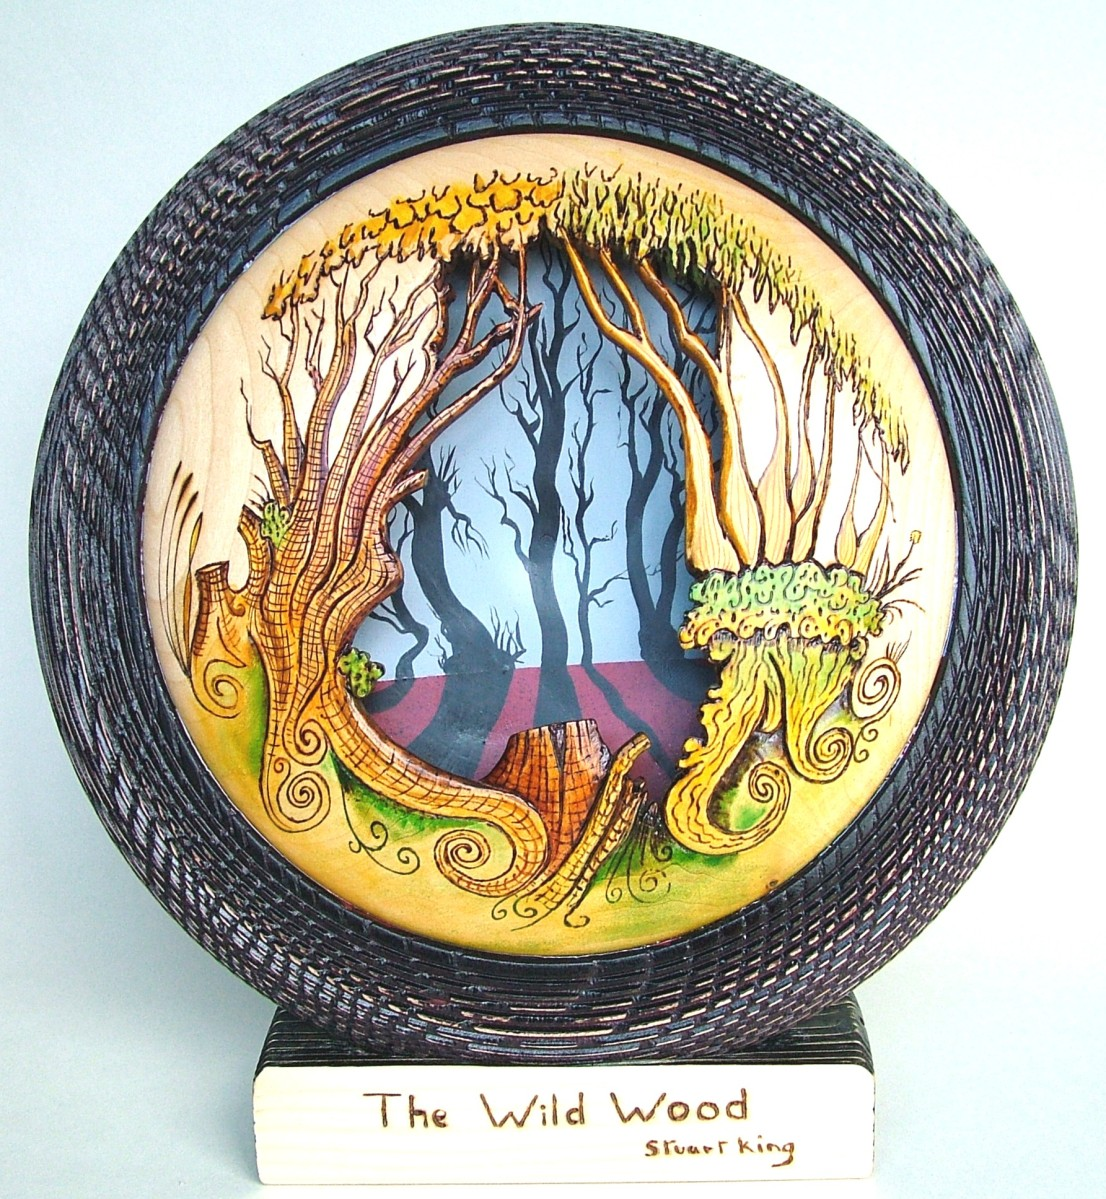 Stuart King The Wild Wood